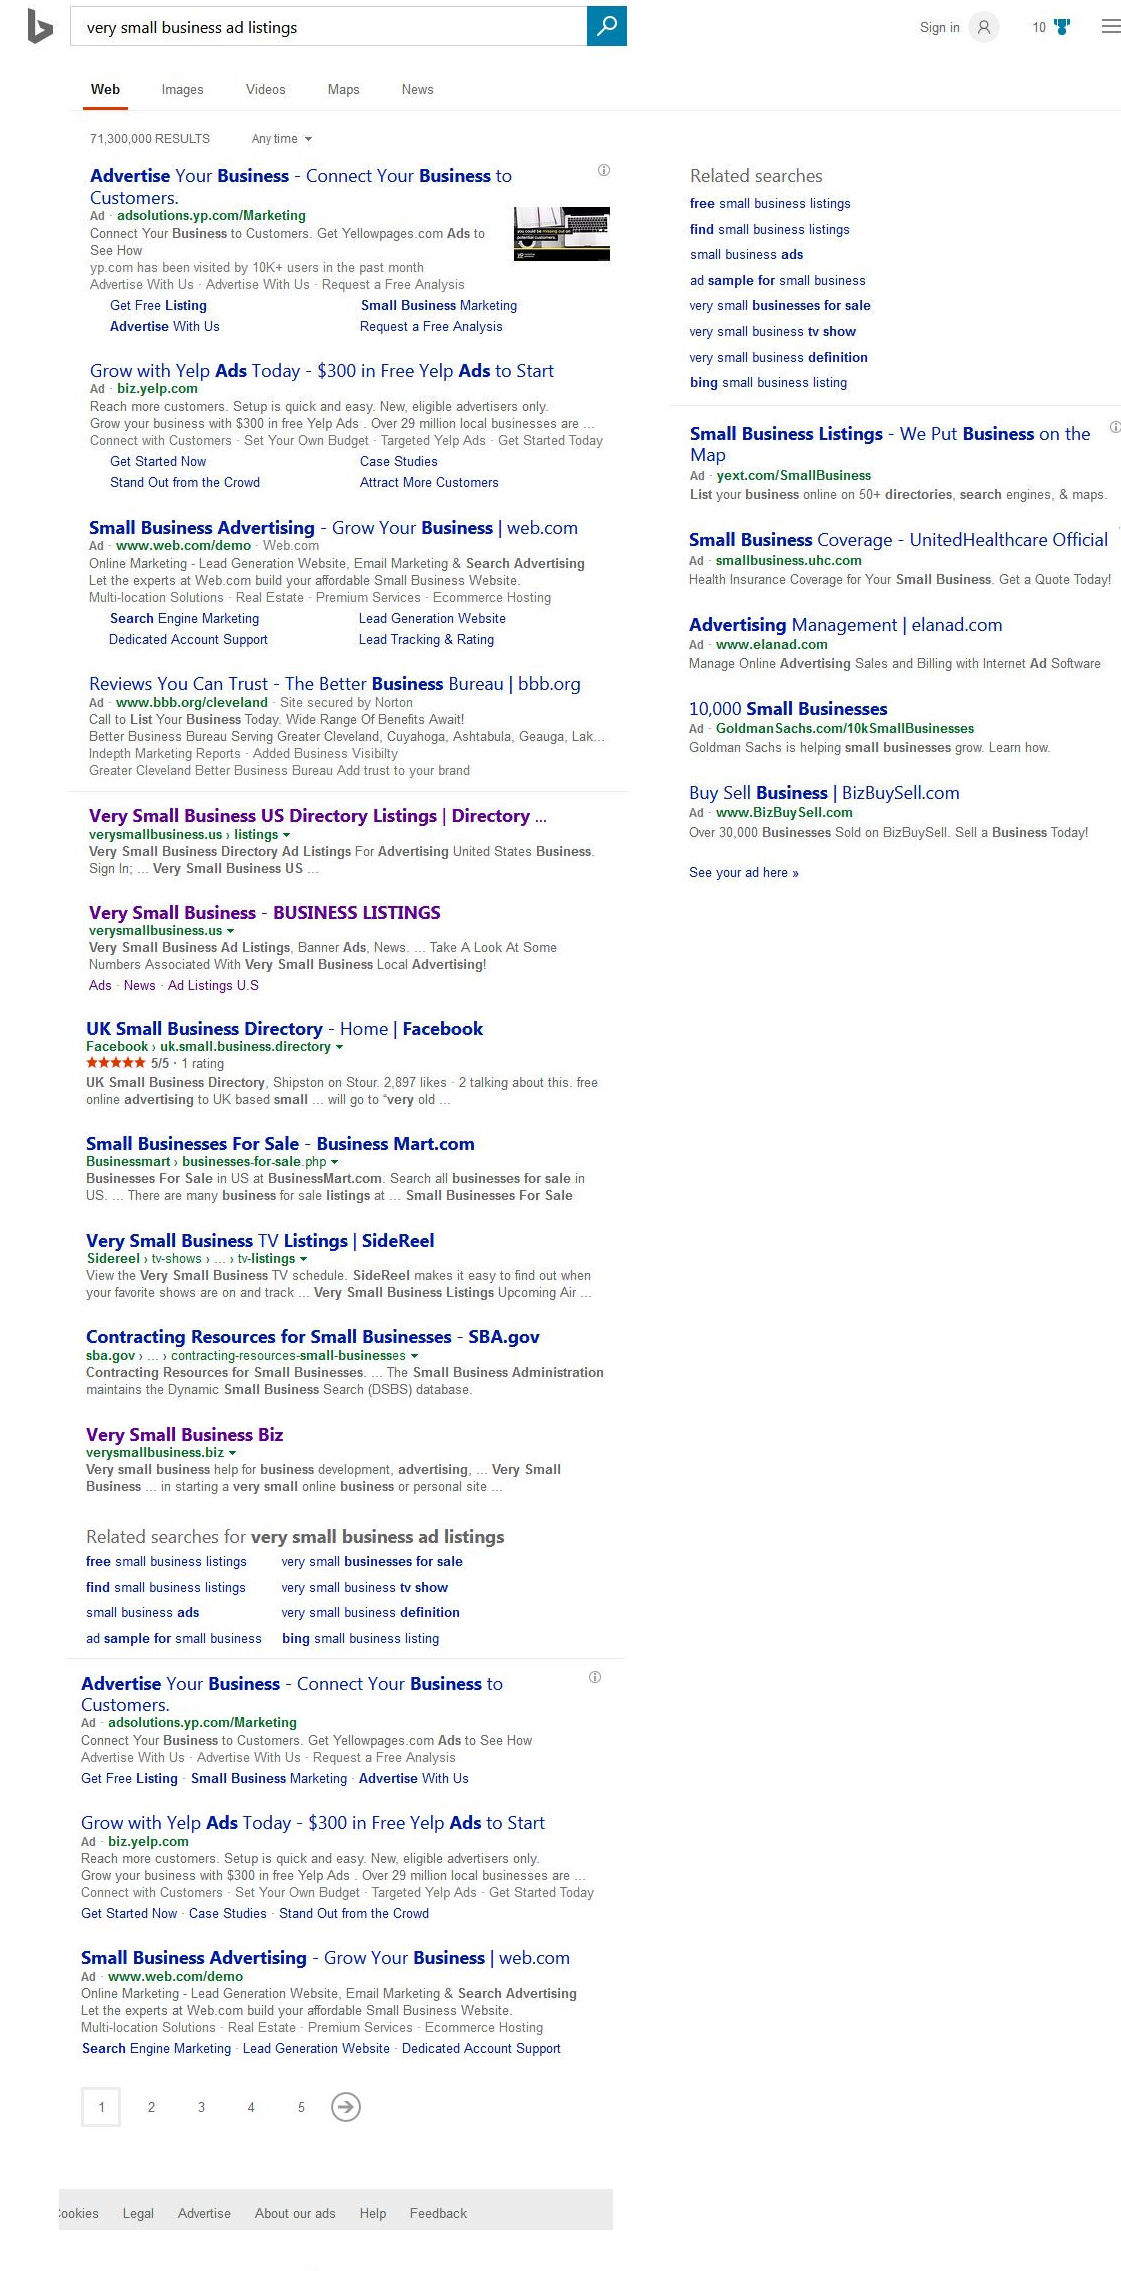 very small business ad listings search result from Bing 05142017